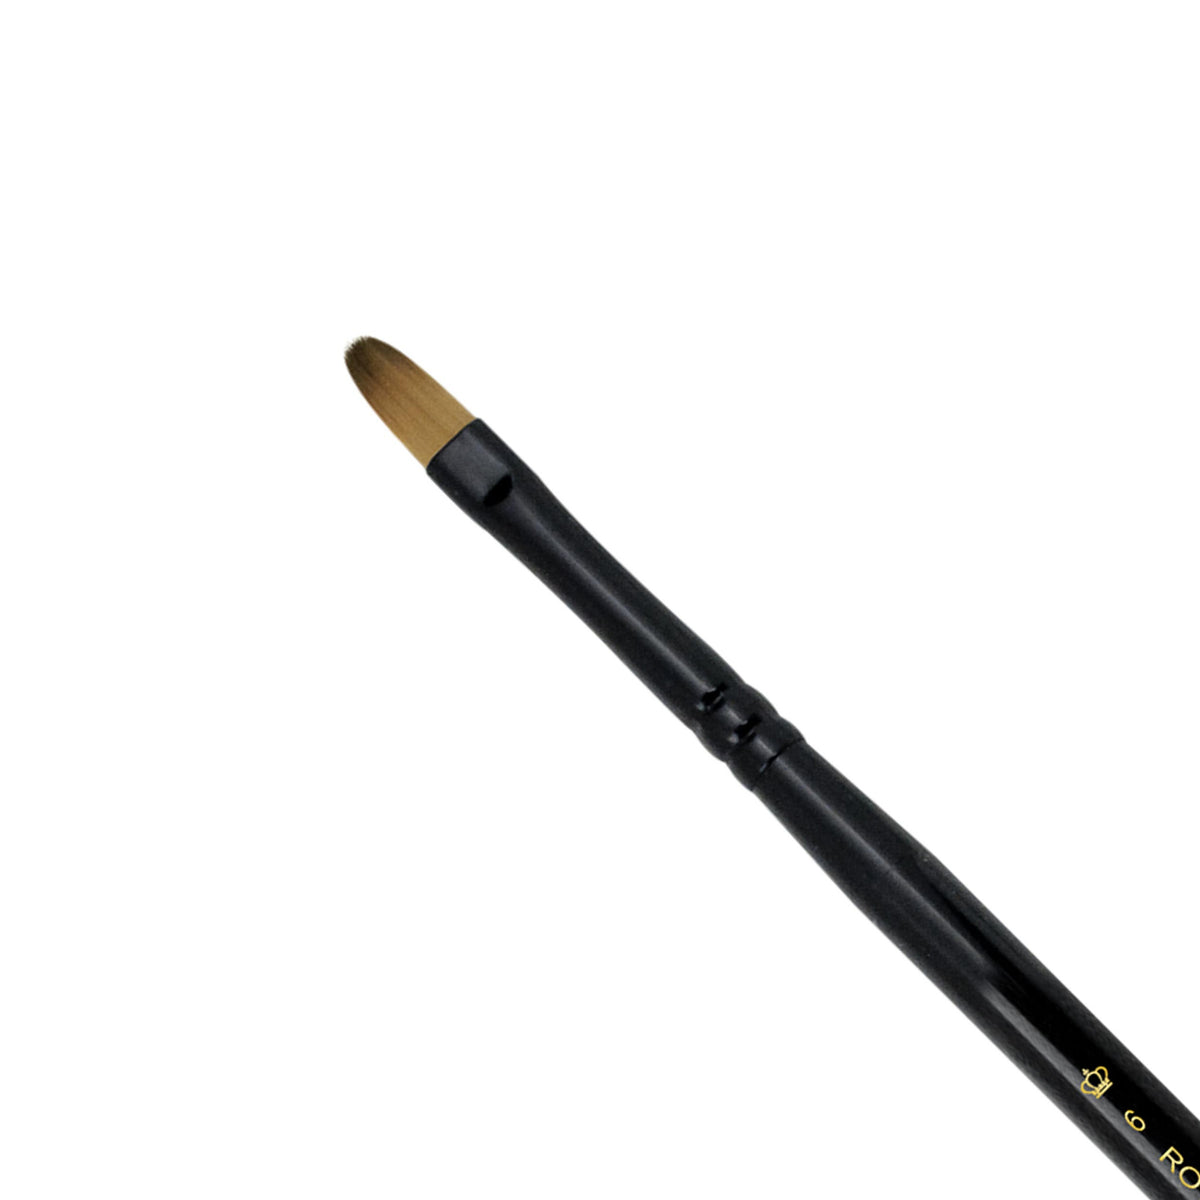 Royal & Langnickel Majestic Filbert S6 Brush - Red Carpet FX - Professional Makeup